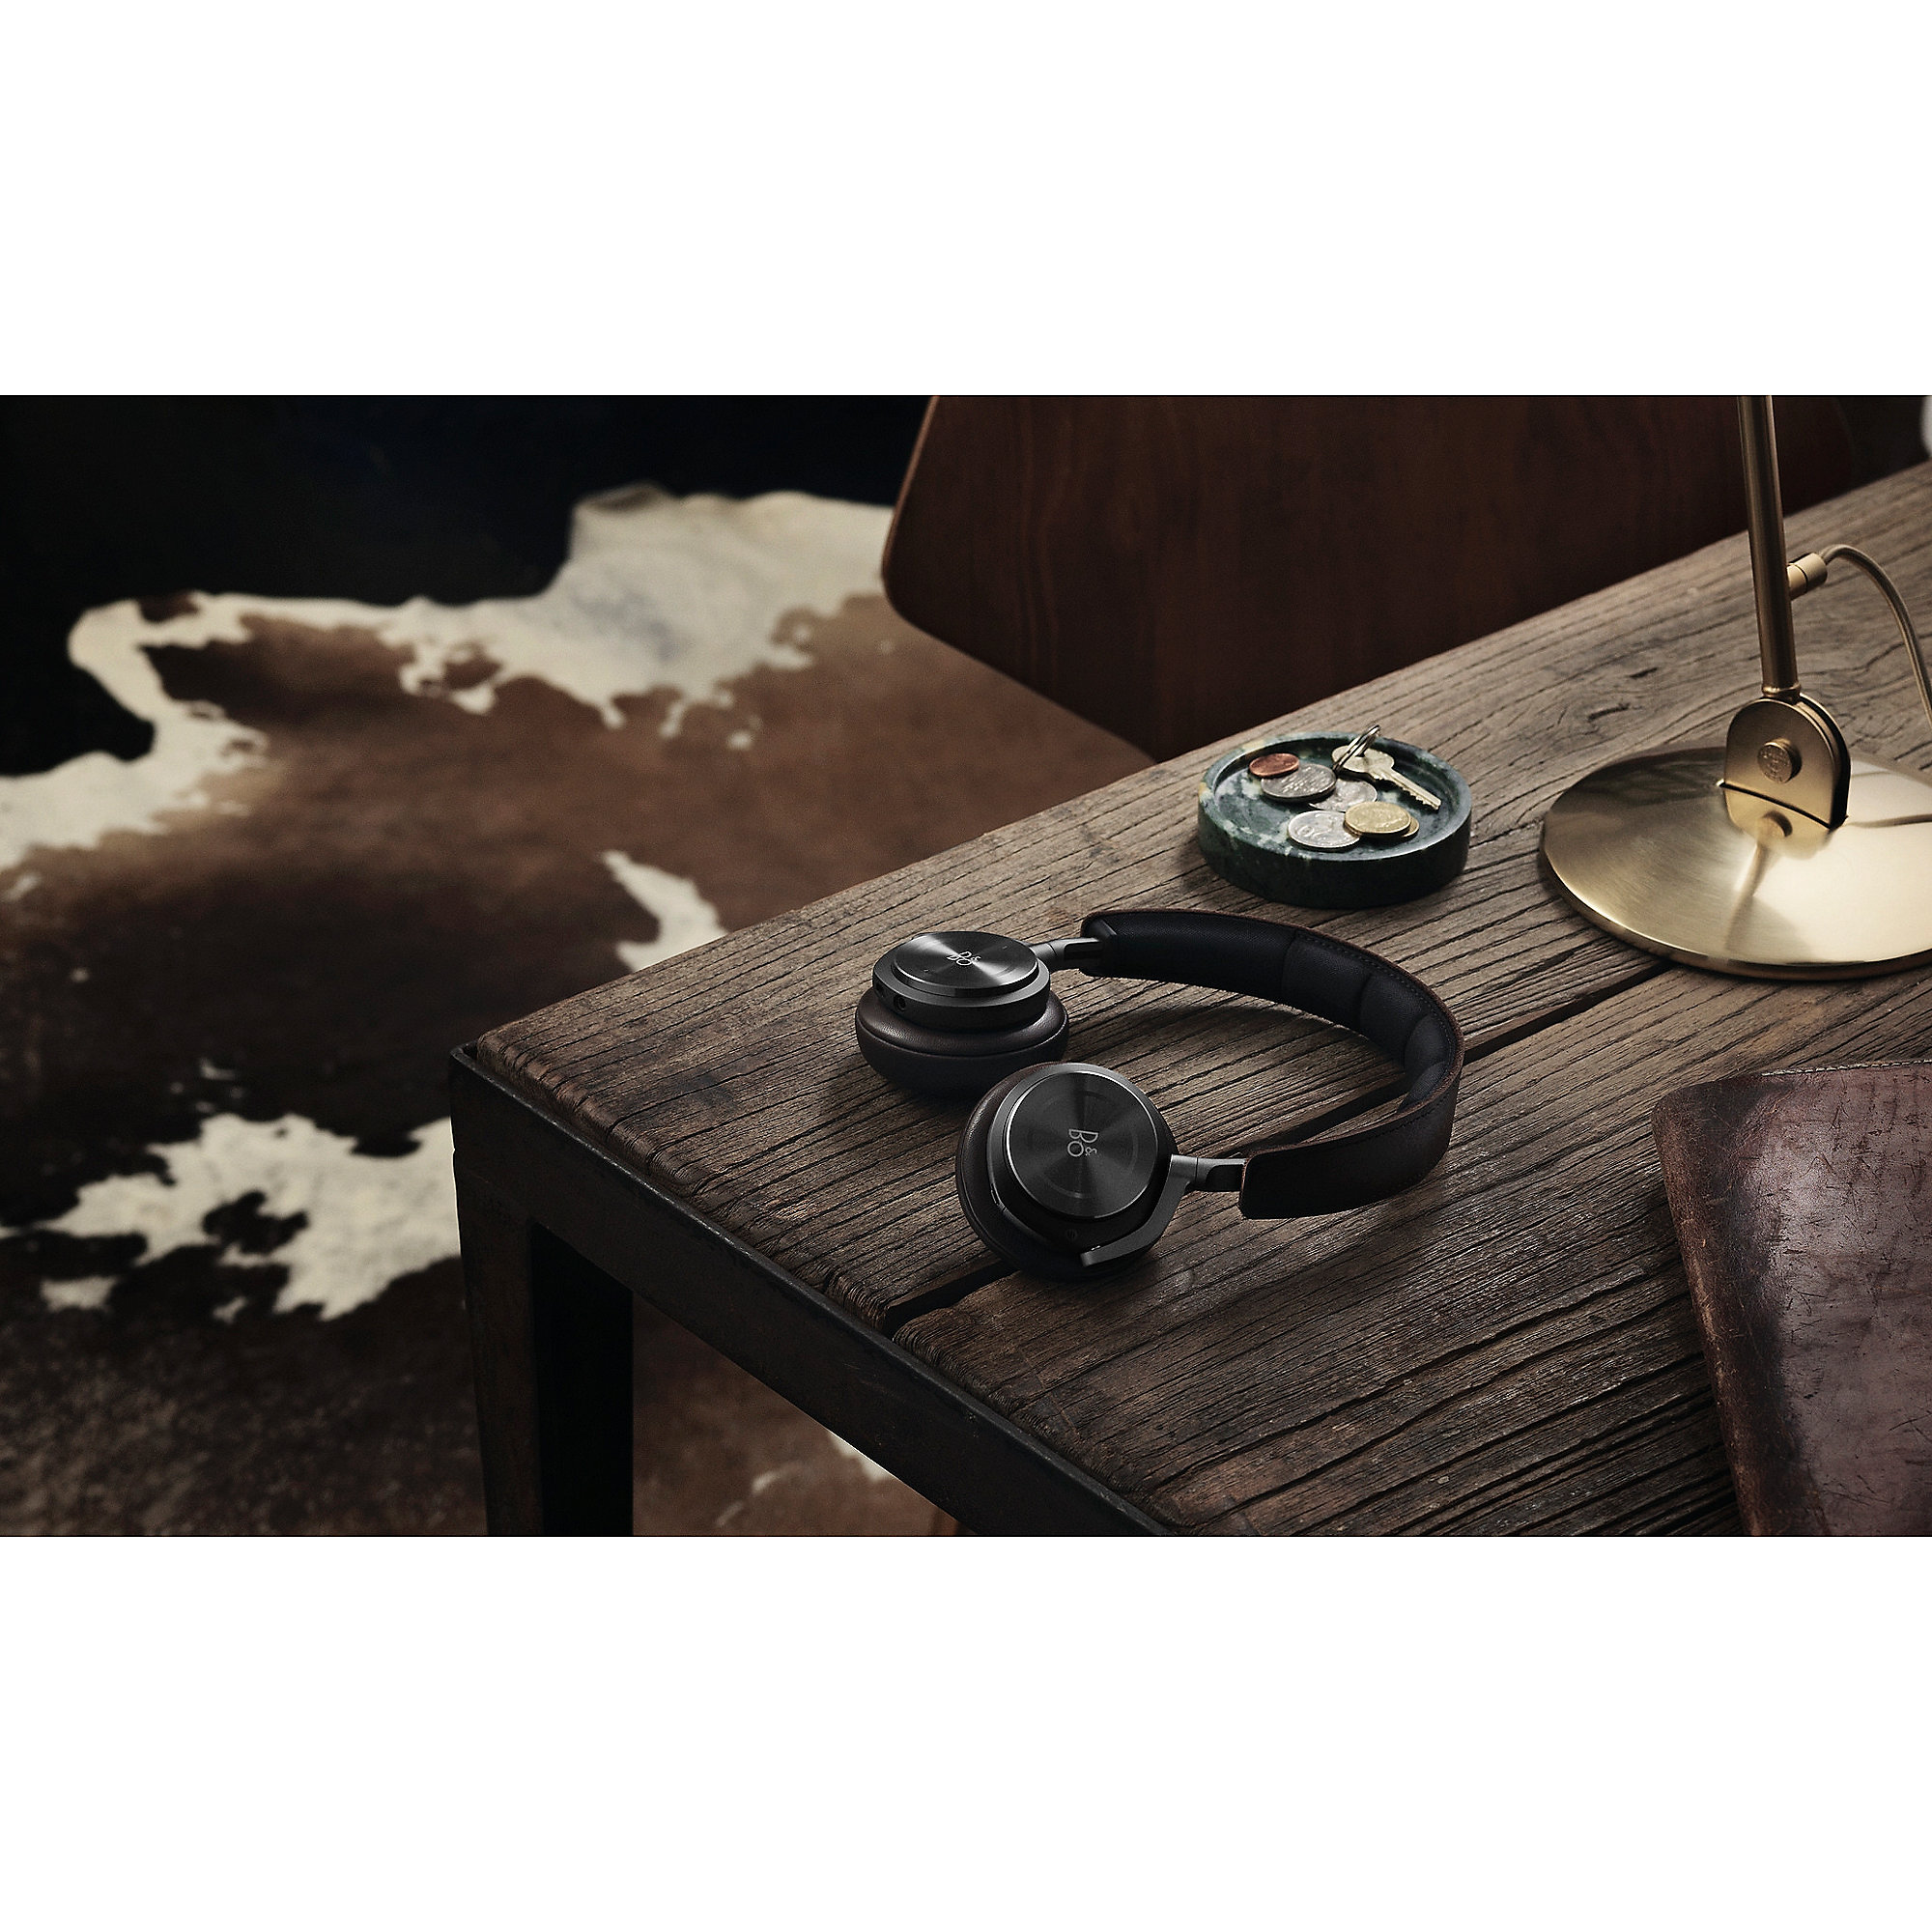 B&O PLAY BeoPlay H8 On-Ear Bluetooth-Kopfhörer -Noise-Cancellation schwarz